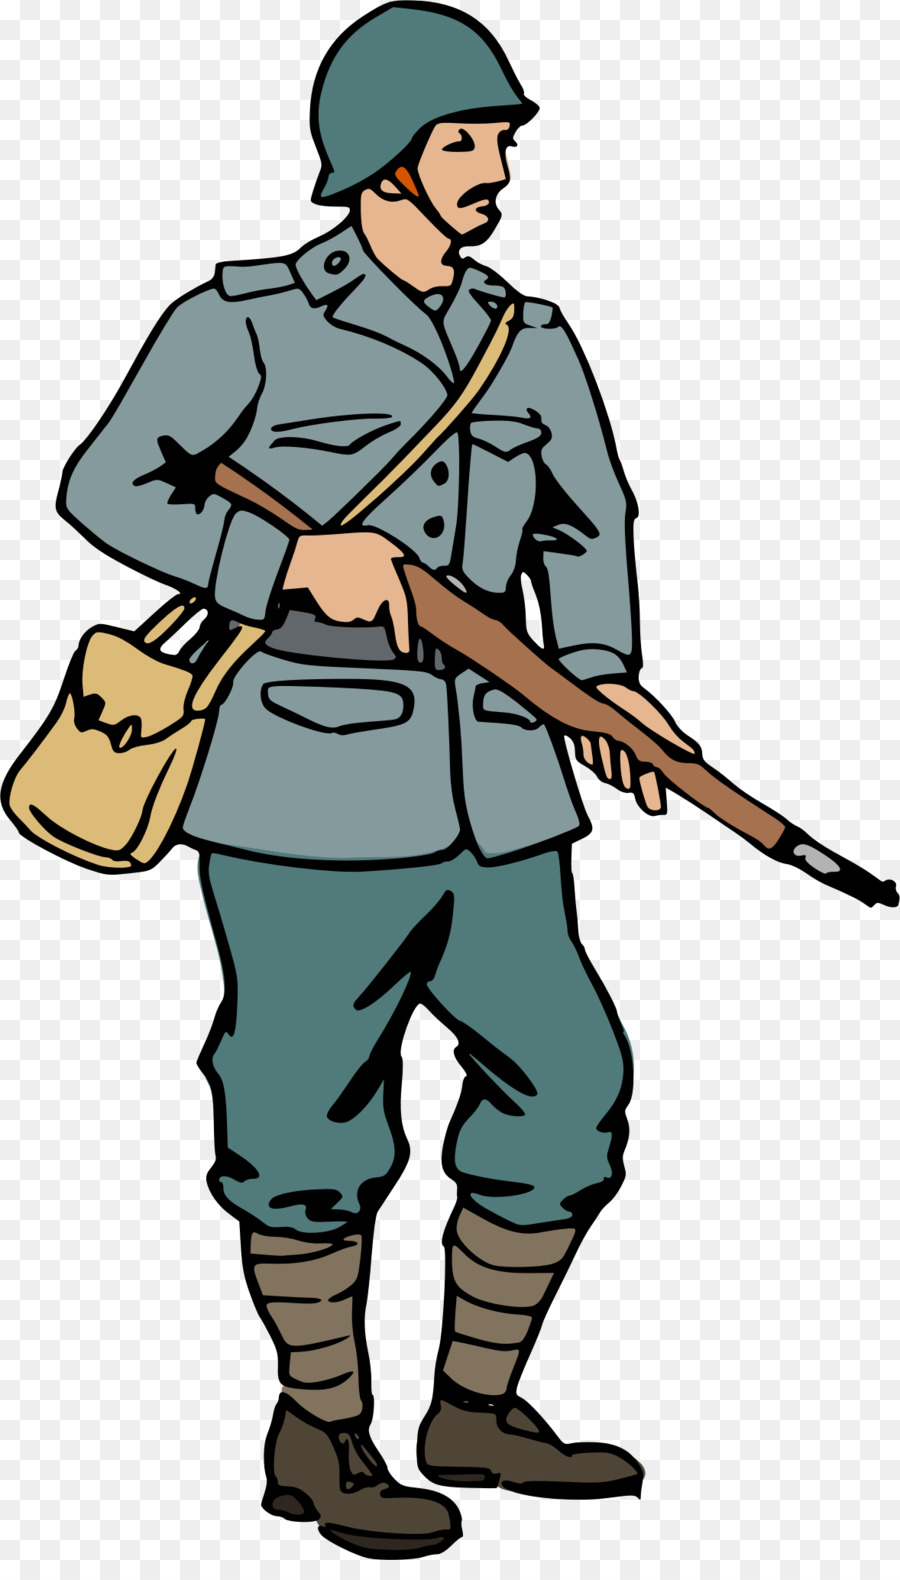 900x1580 Second World War First World War Soldier Clip Art